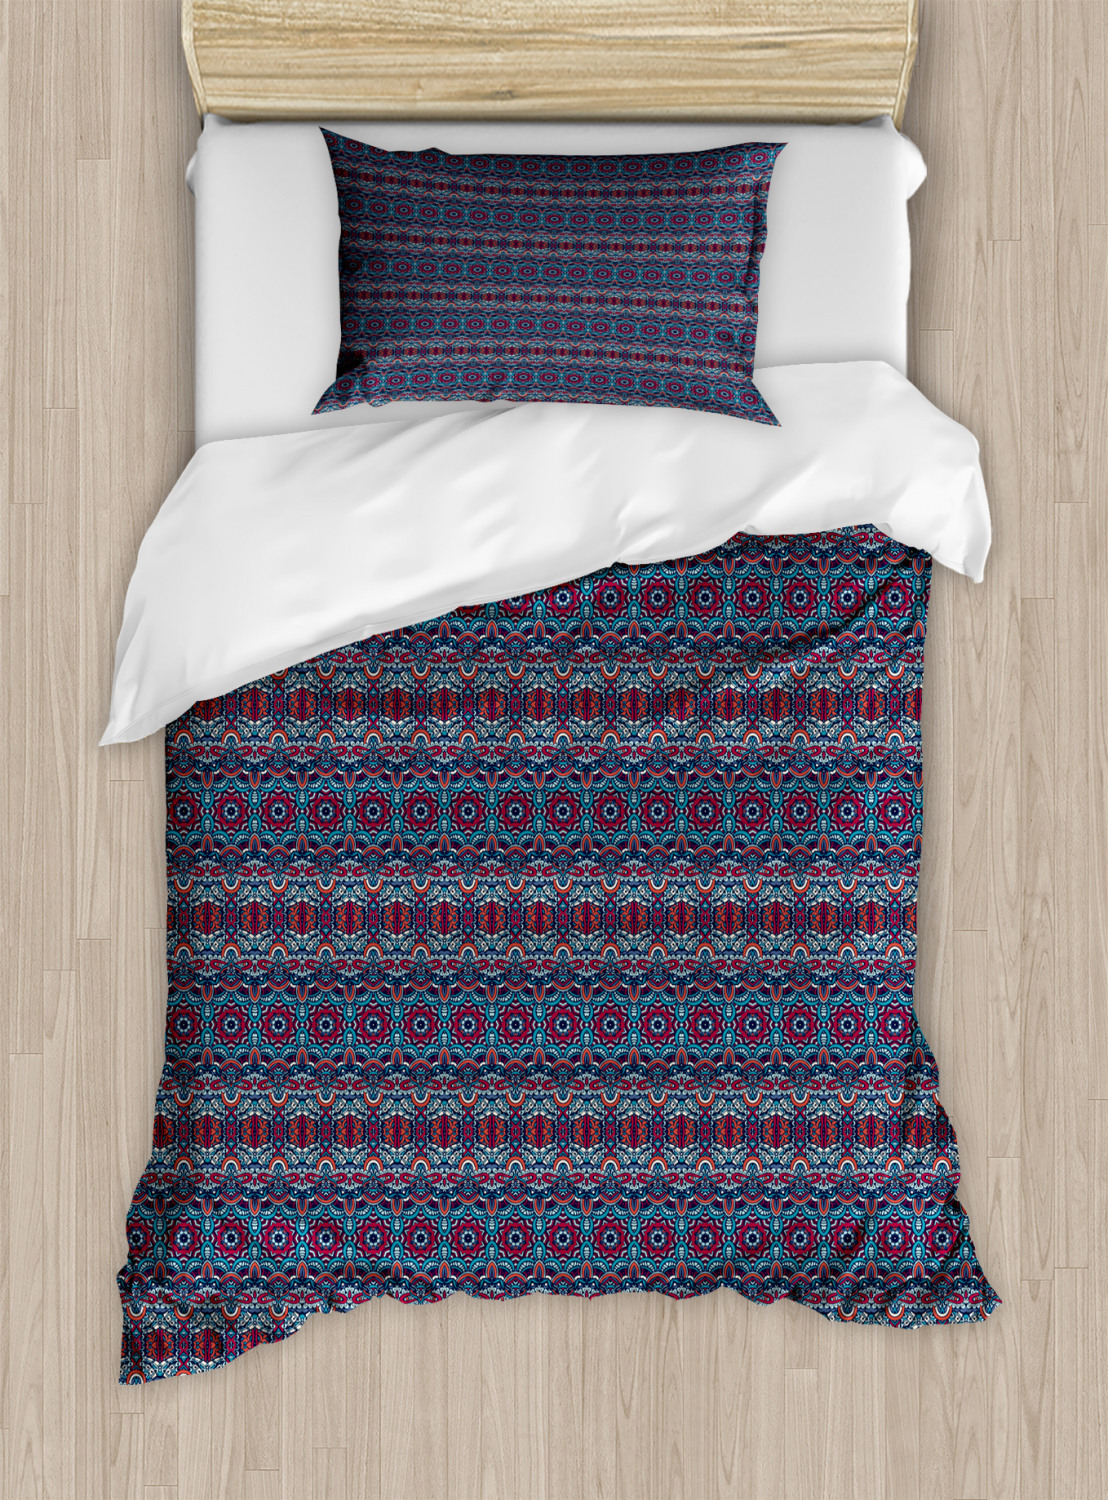 Timeless-Oriental-Duvet-Cover-Set-Twin-Queen-King-Sizes-with-Pillow-Shams thumbnail 67